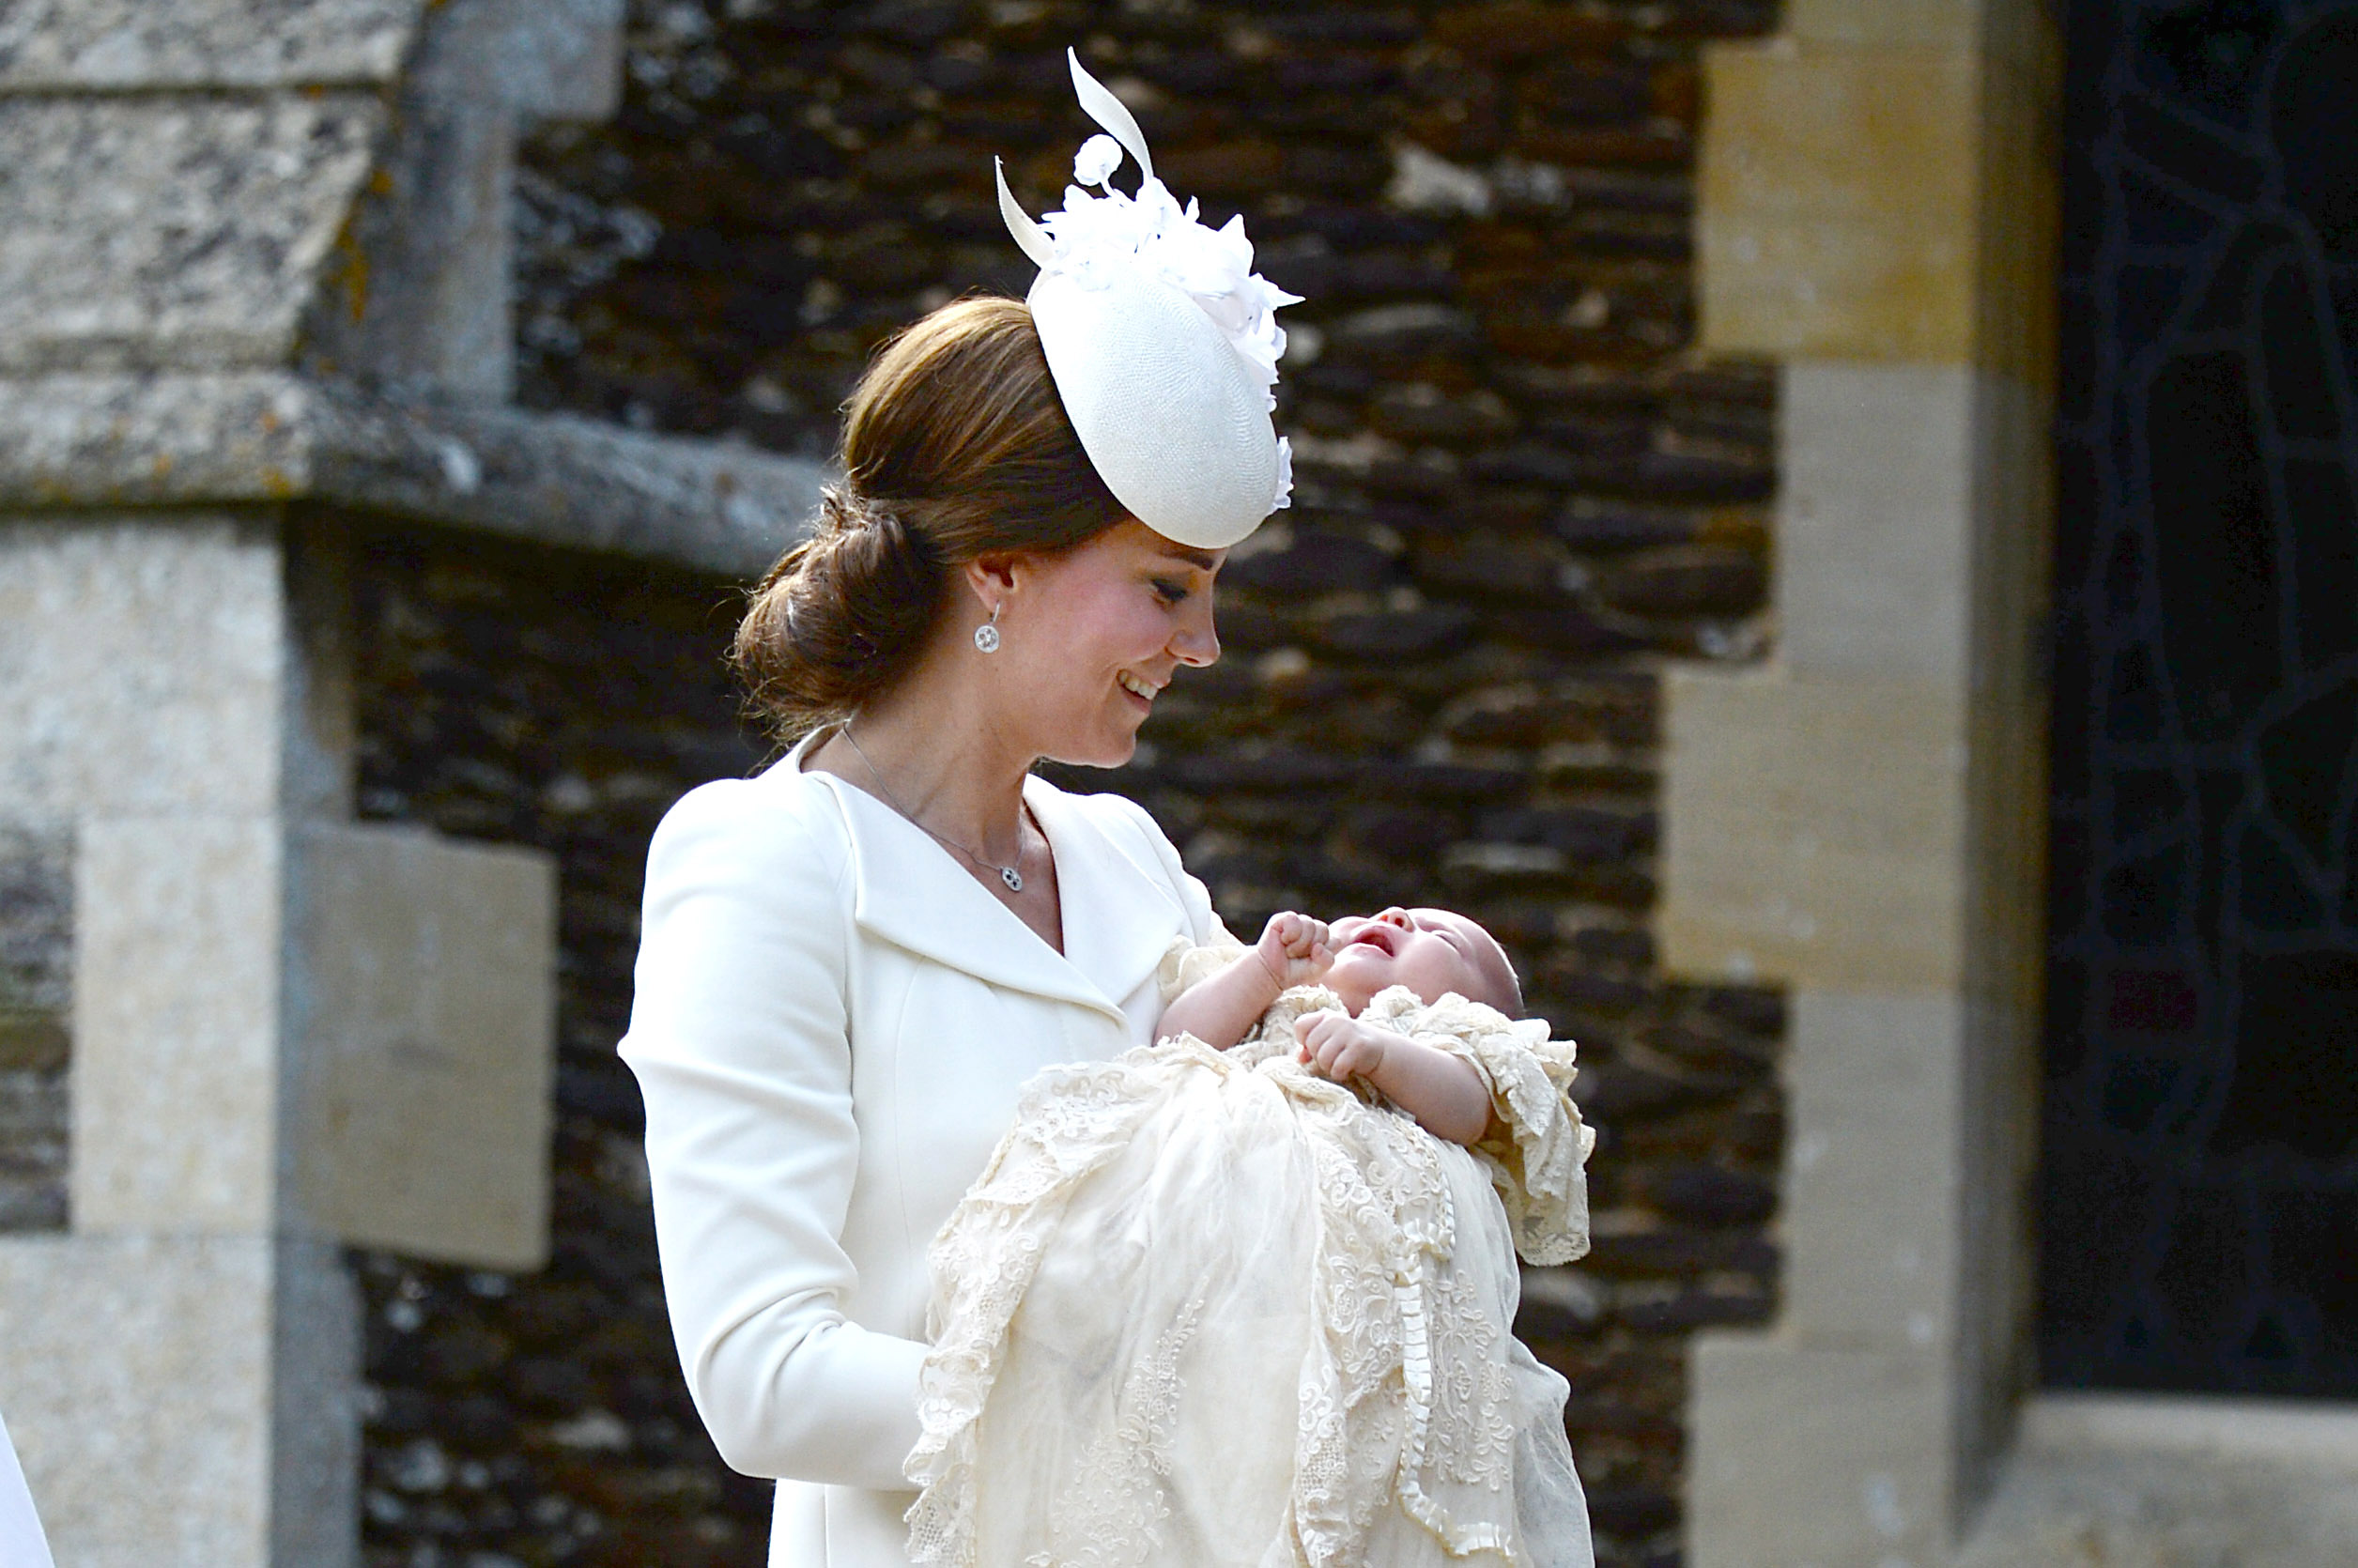 Catherine, Duchess of Cambridge and Princess Charlotte of Cambridge arrive at the Church of St Mary Magdalene on the Sandringham Estate for the Christening of Princess Charlotte on July 5, 2015.